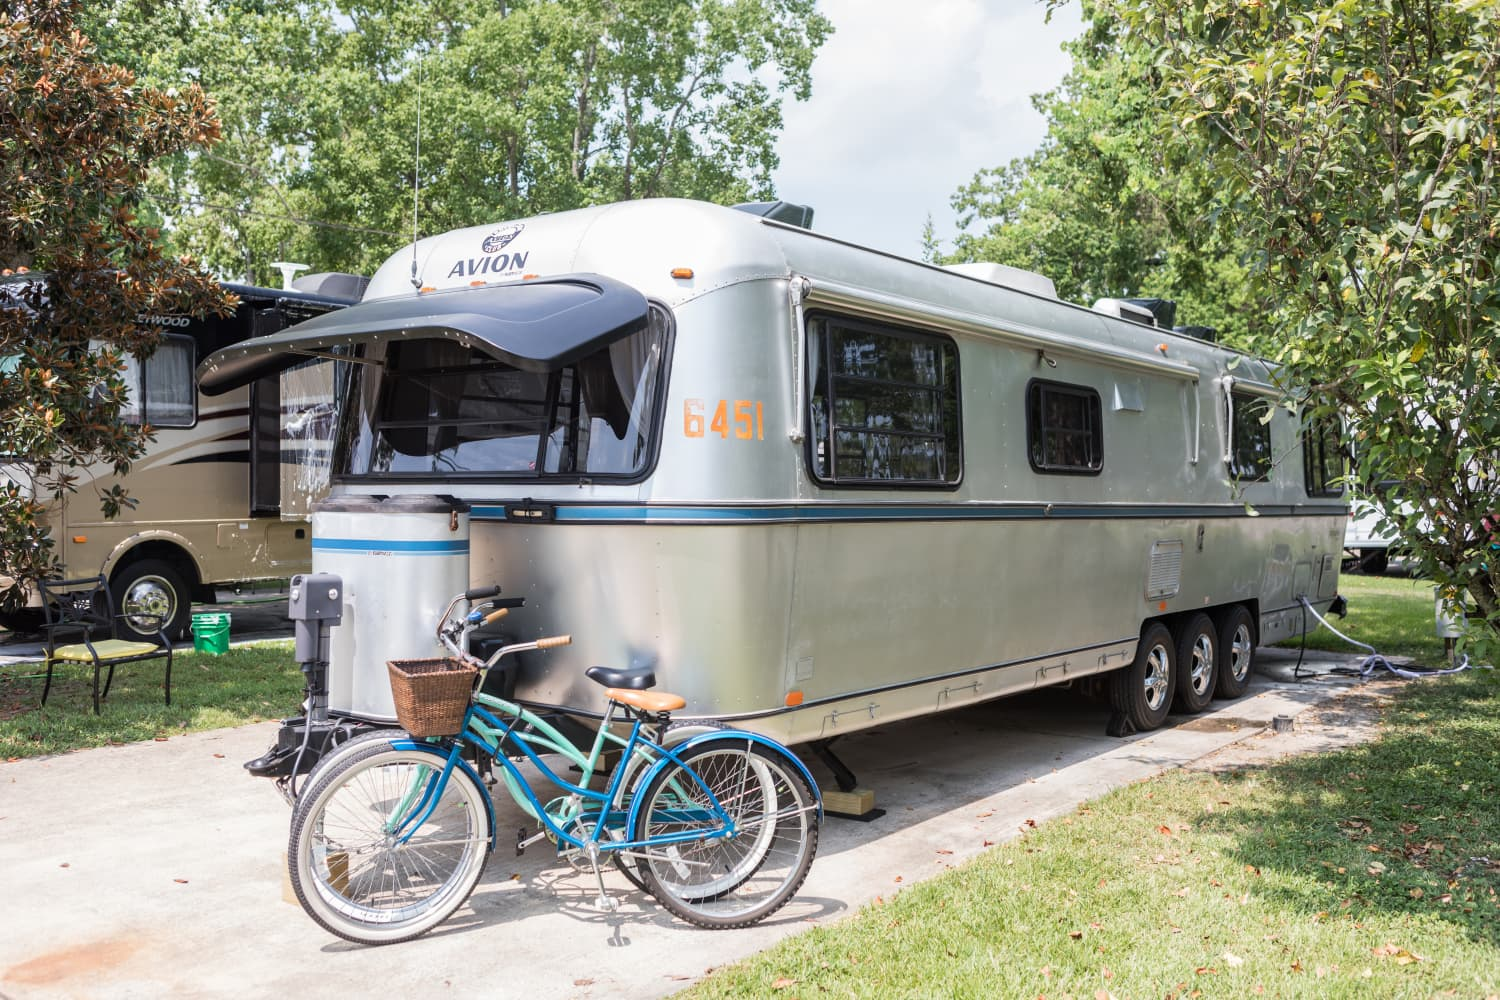 Here's How One Family with Triplets Cooks in Their Tiny RV Kitchen